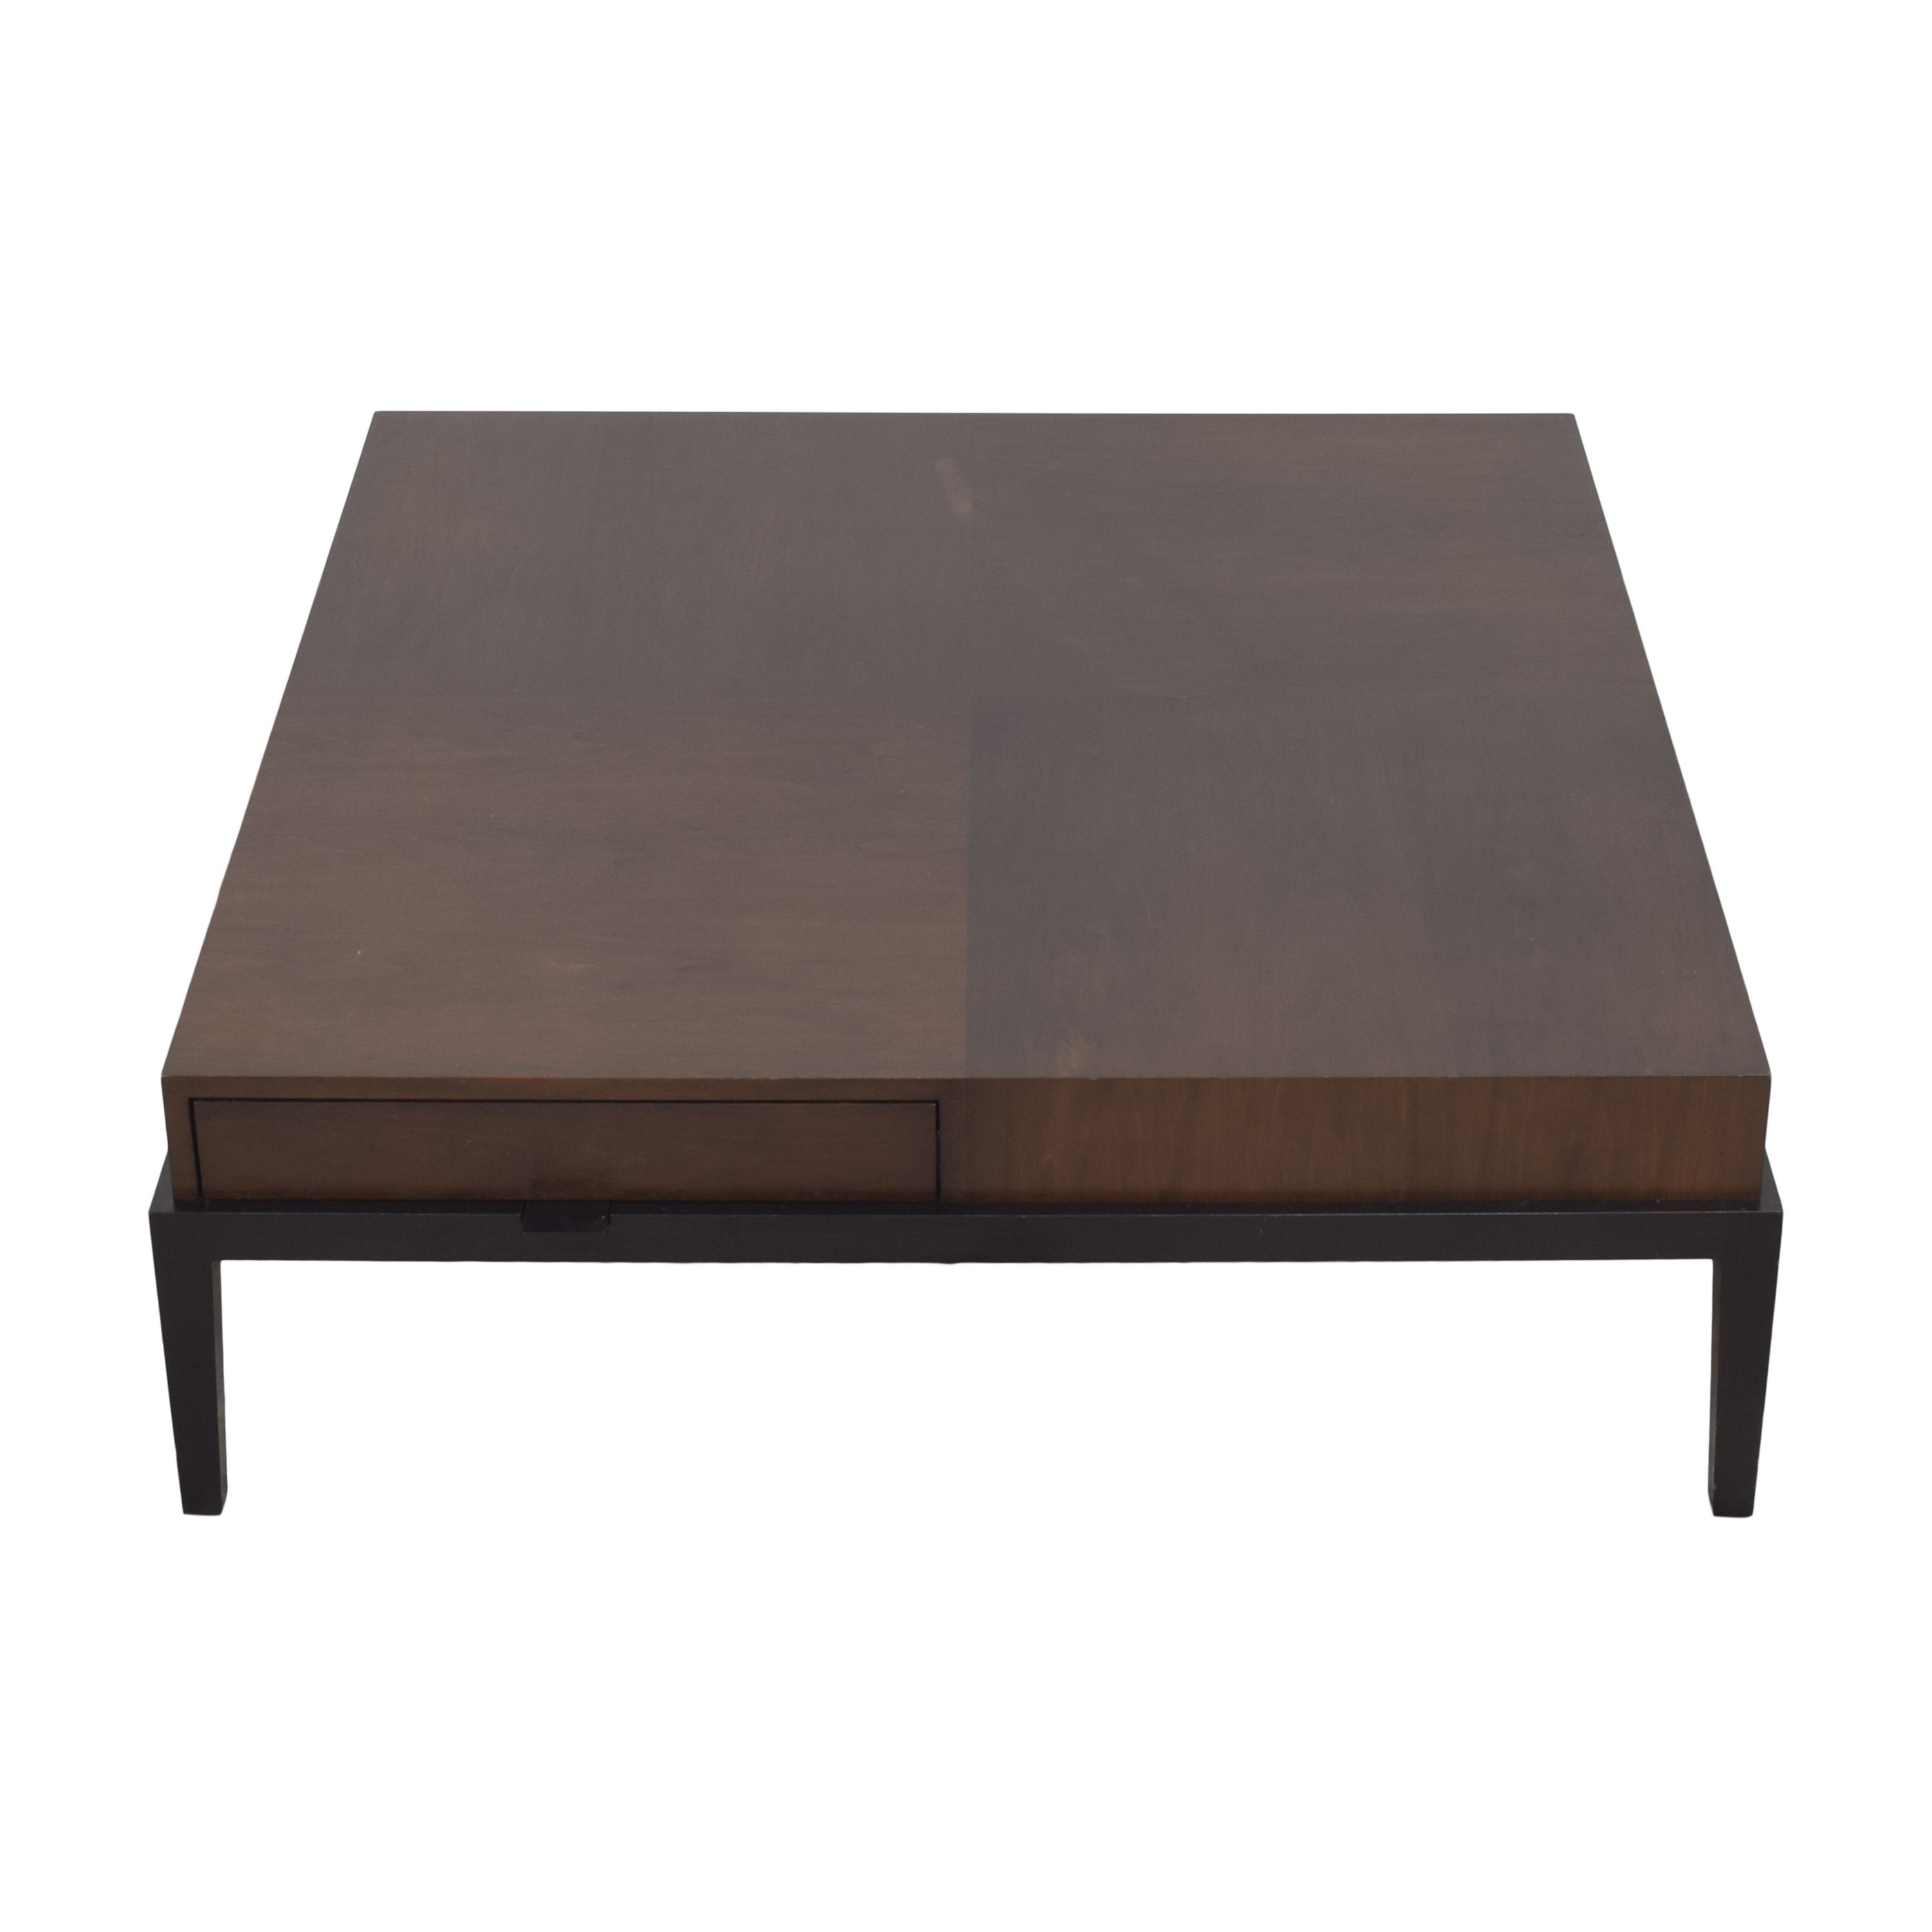 72 Off Holly Hunt Holly Hunt Monsieur Square Coffee Table By Christian Liaigre Tables In 2021 Coffee Table Coffee Table Square Dark Wood Coffee Table [ 3000 x 3000 Pixel ]